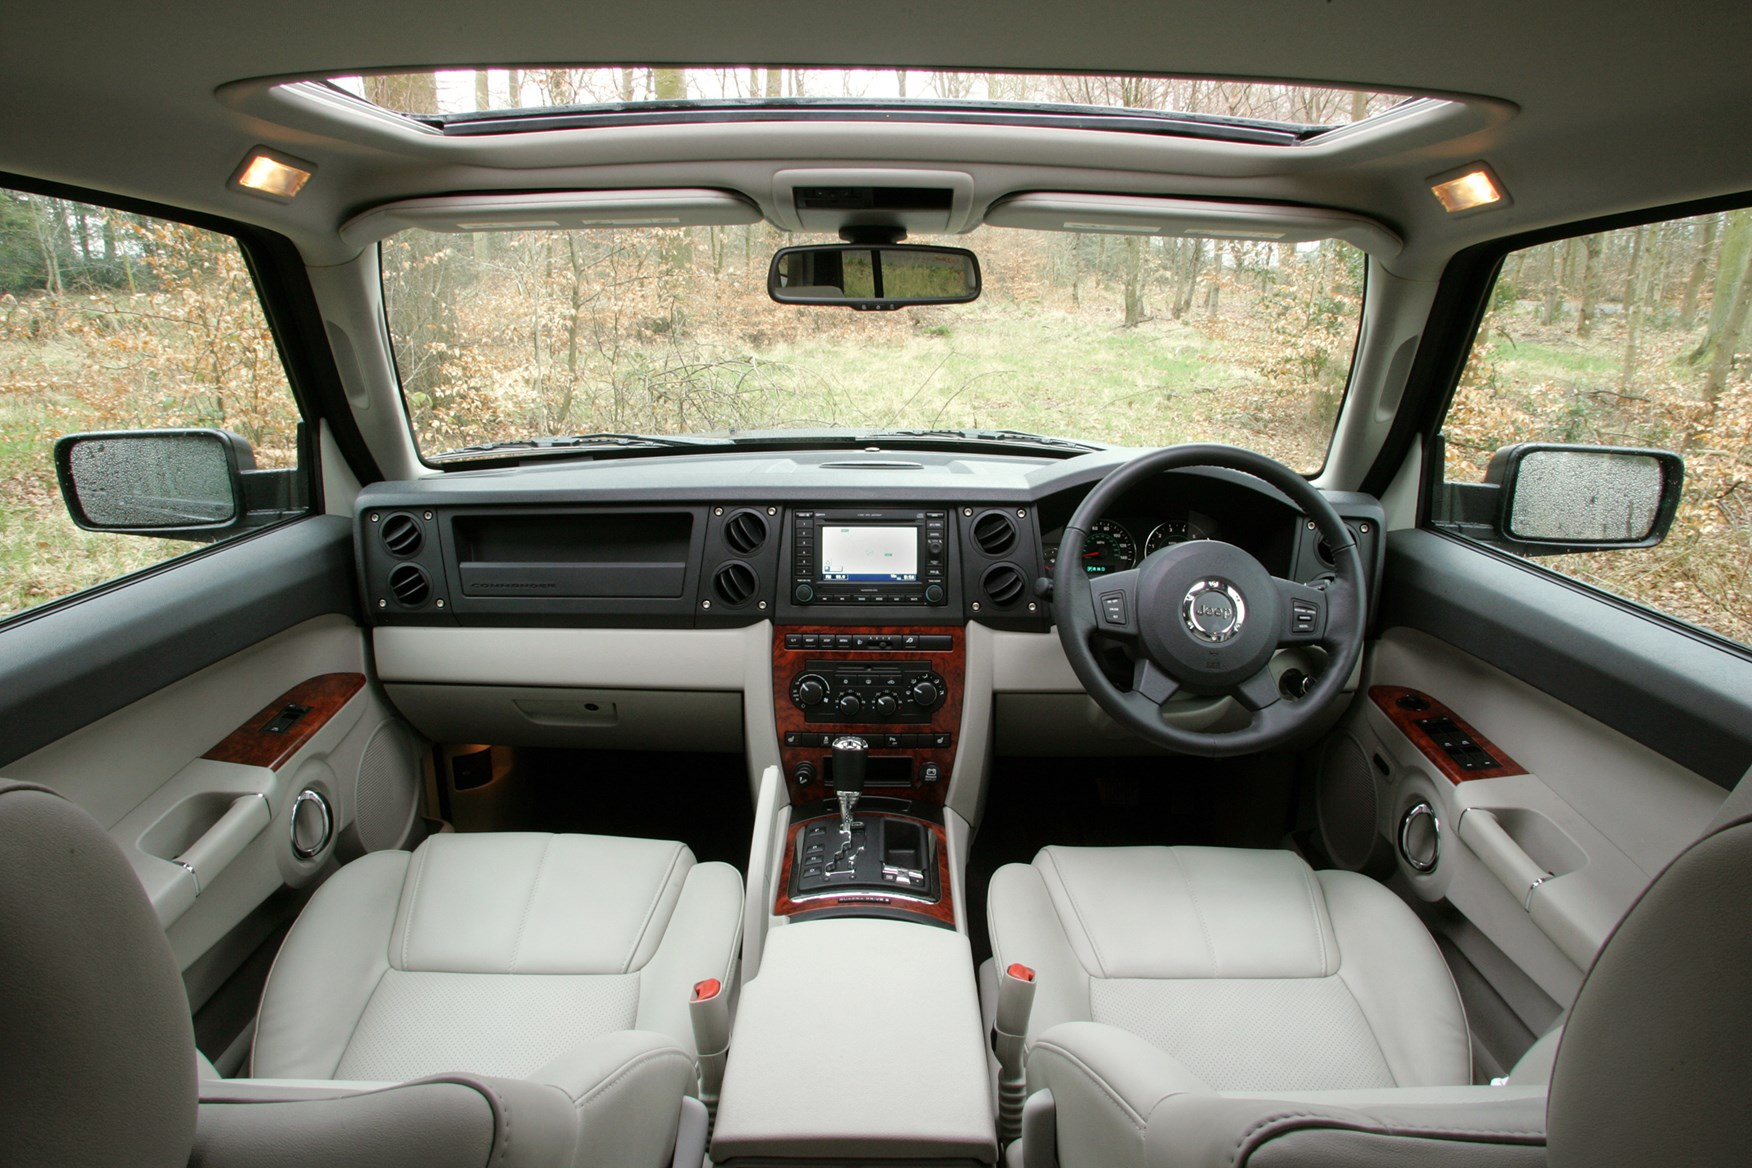 jeep commander station wagon review (2006 - 2009) | parkers